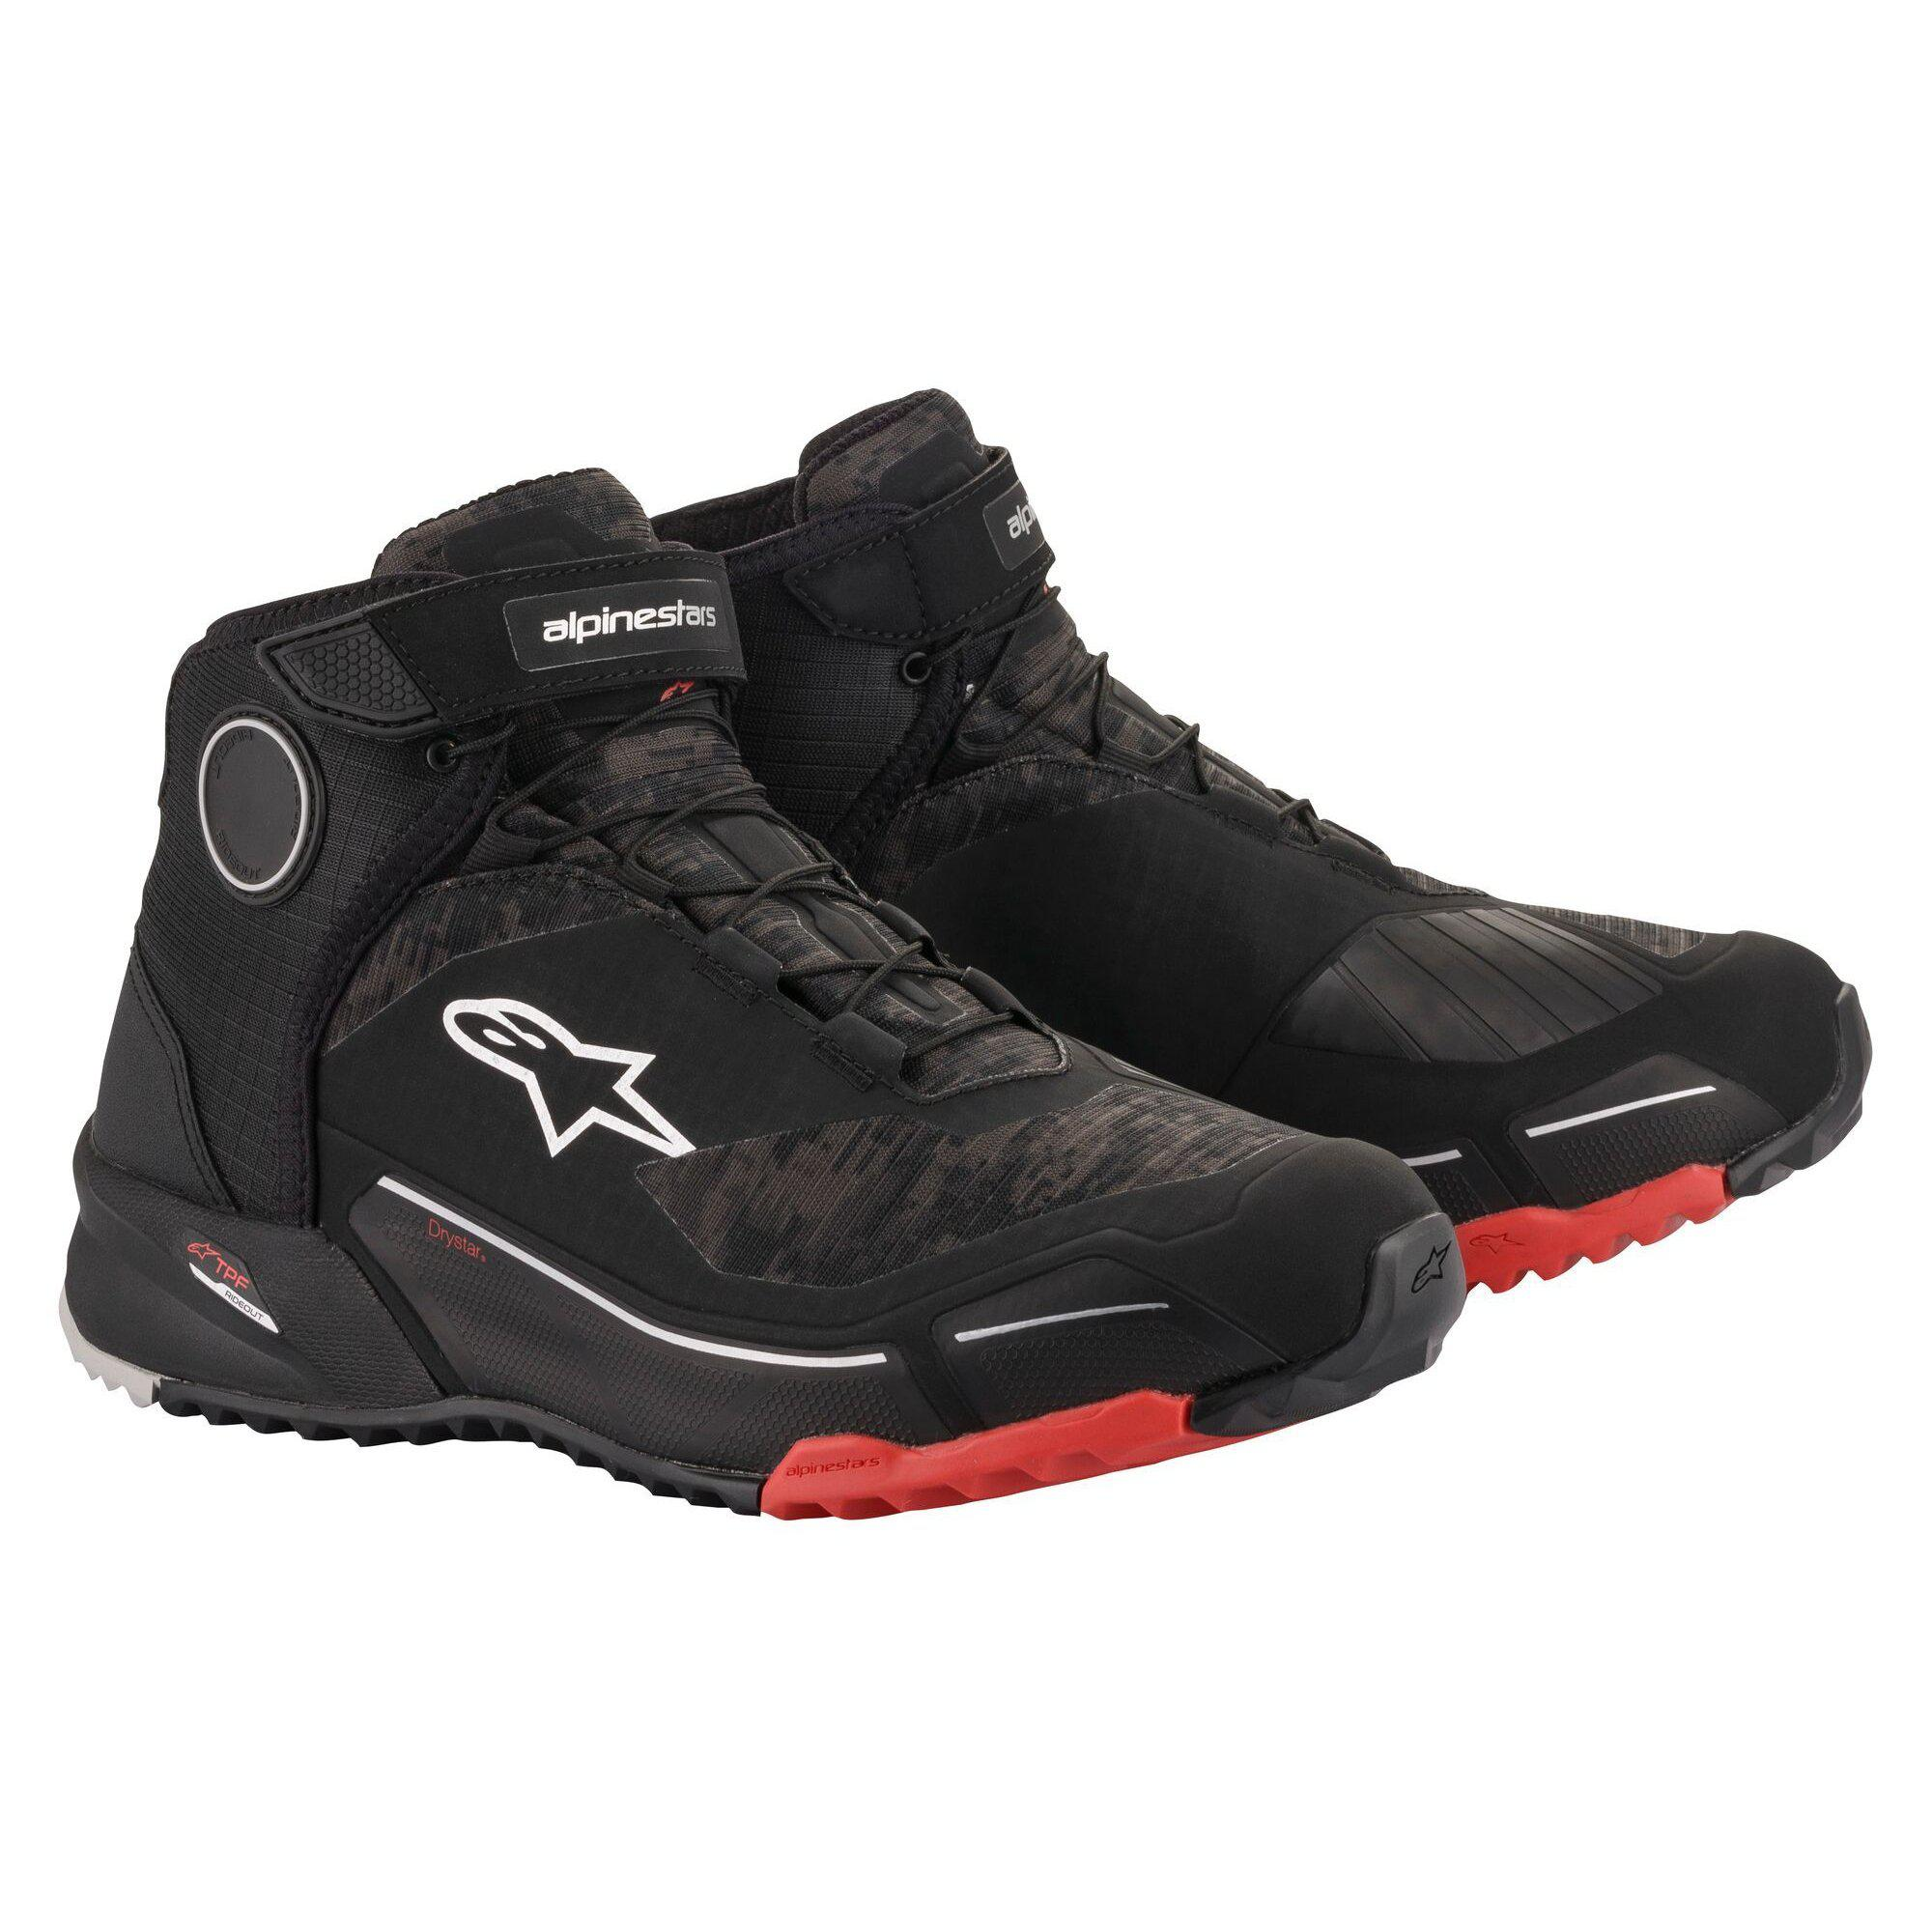 CR-X Drystar® Riding Shoes